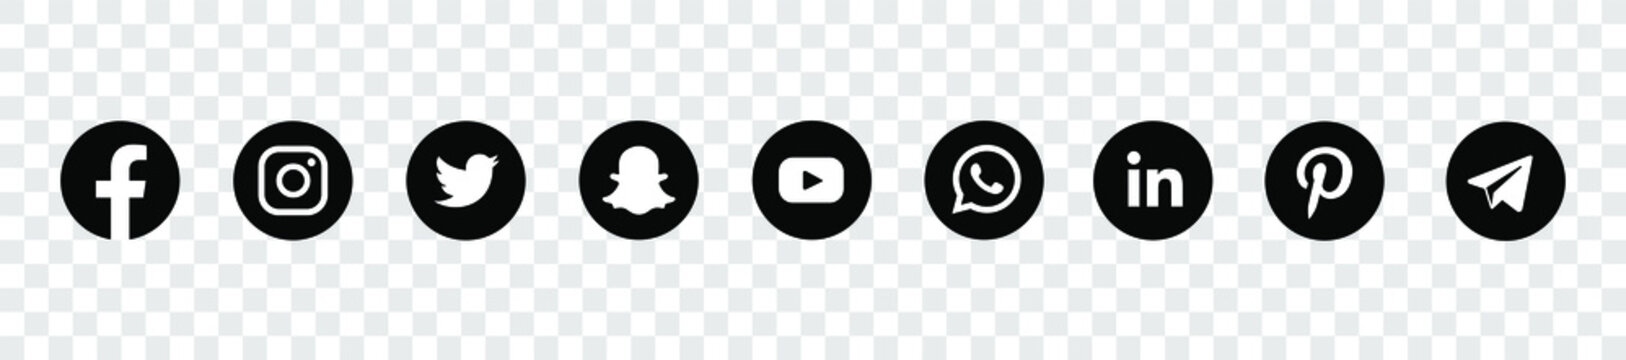 Social media icons. Black colored icon set illustration. facebook twitter instagram, youtube, twitter, snapchat, pinterest, whatsap icon.